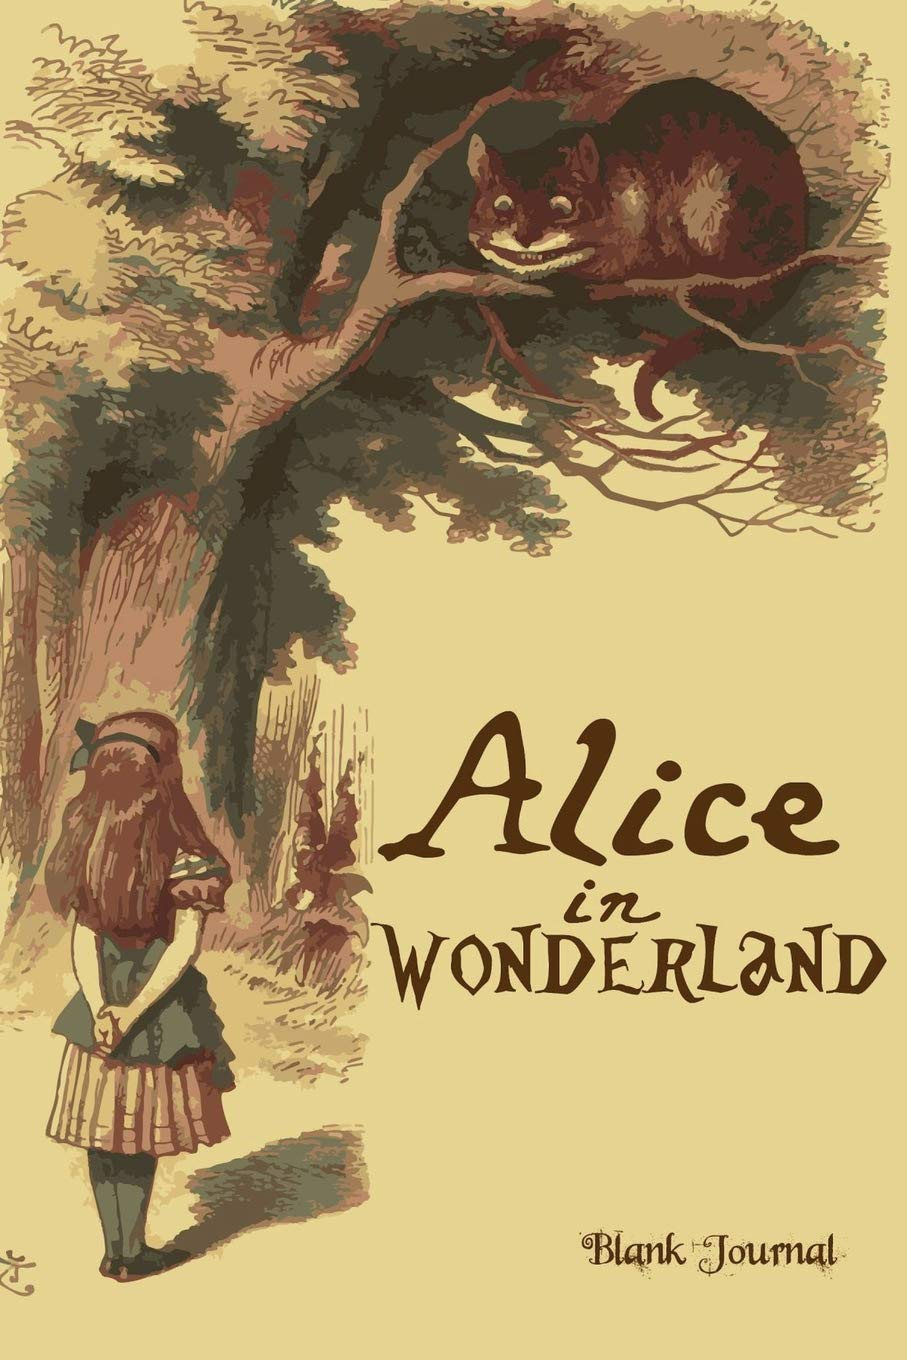 alice in wonderland journal blank unlined unruled 5 mm dot grid paperback notebook to write in for adults kids students teachers artists and 9 high wonderland cat journals volume 1